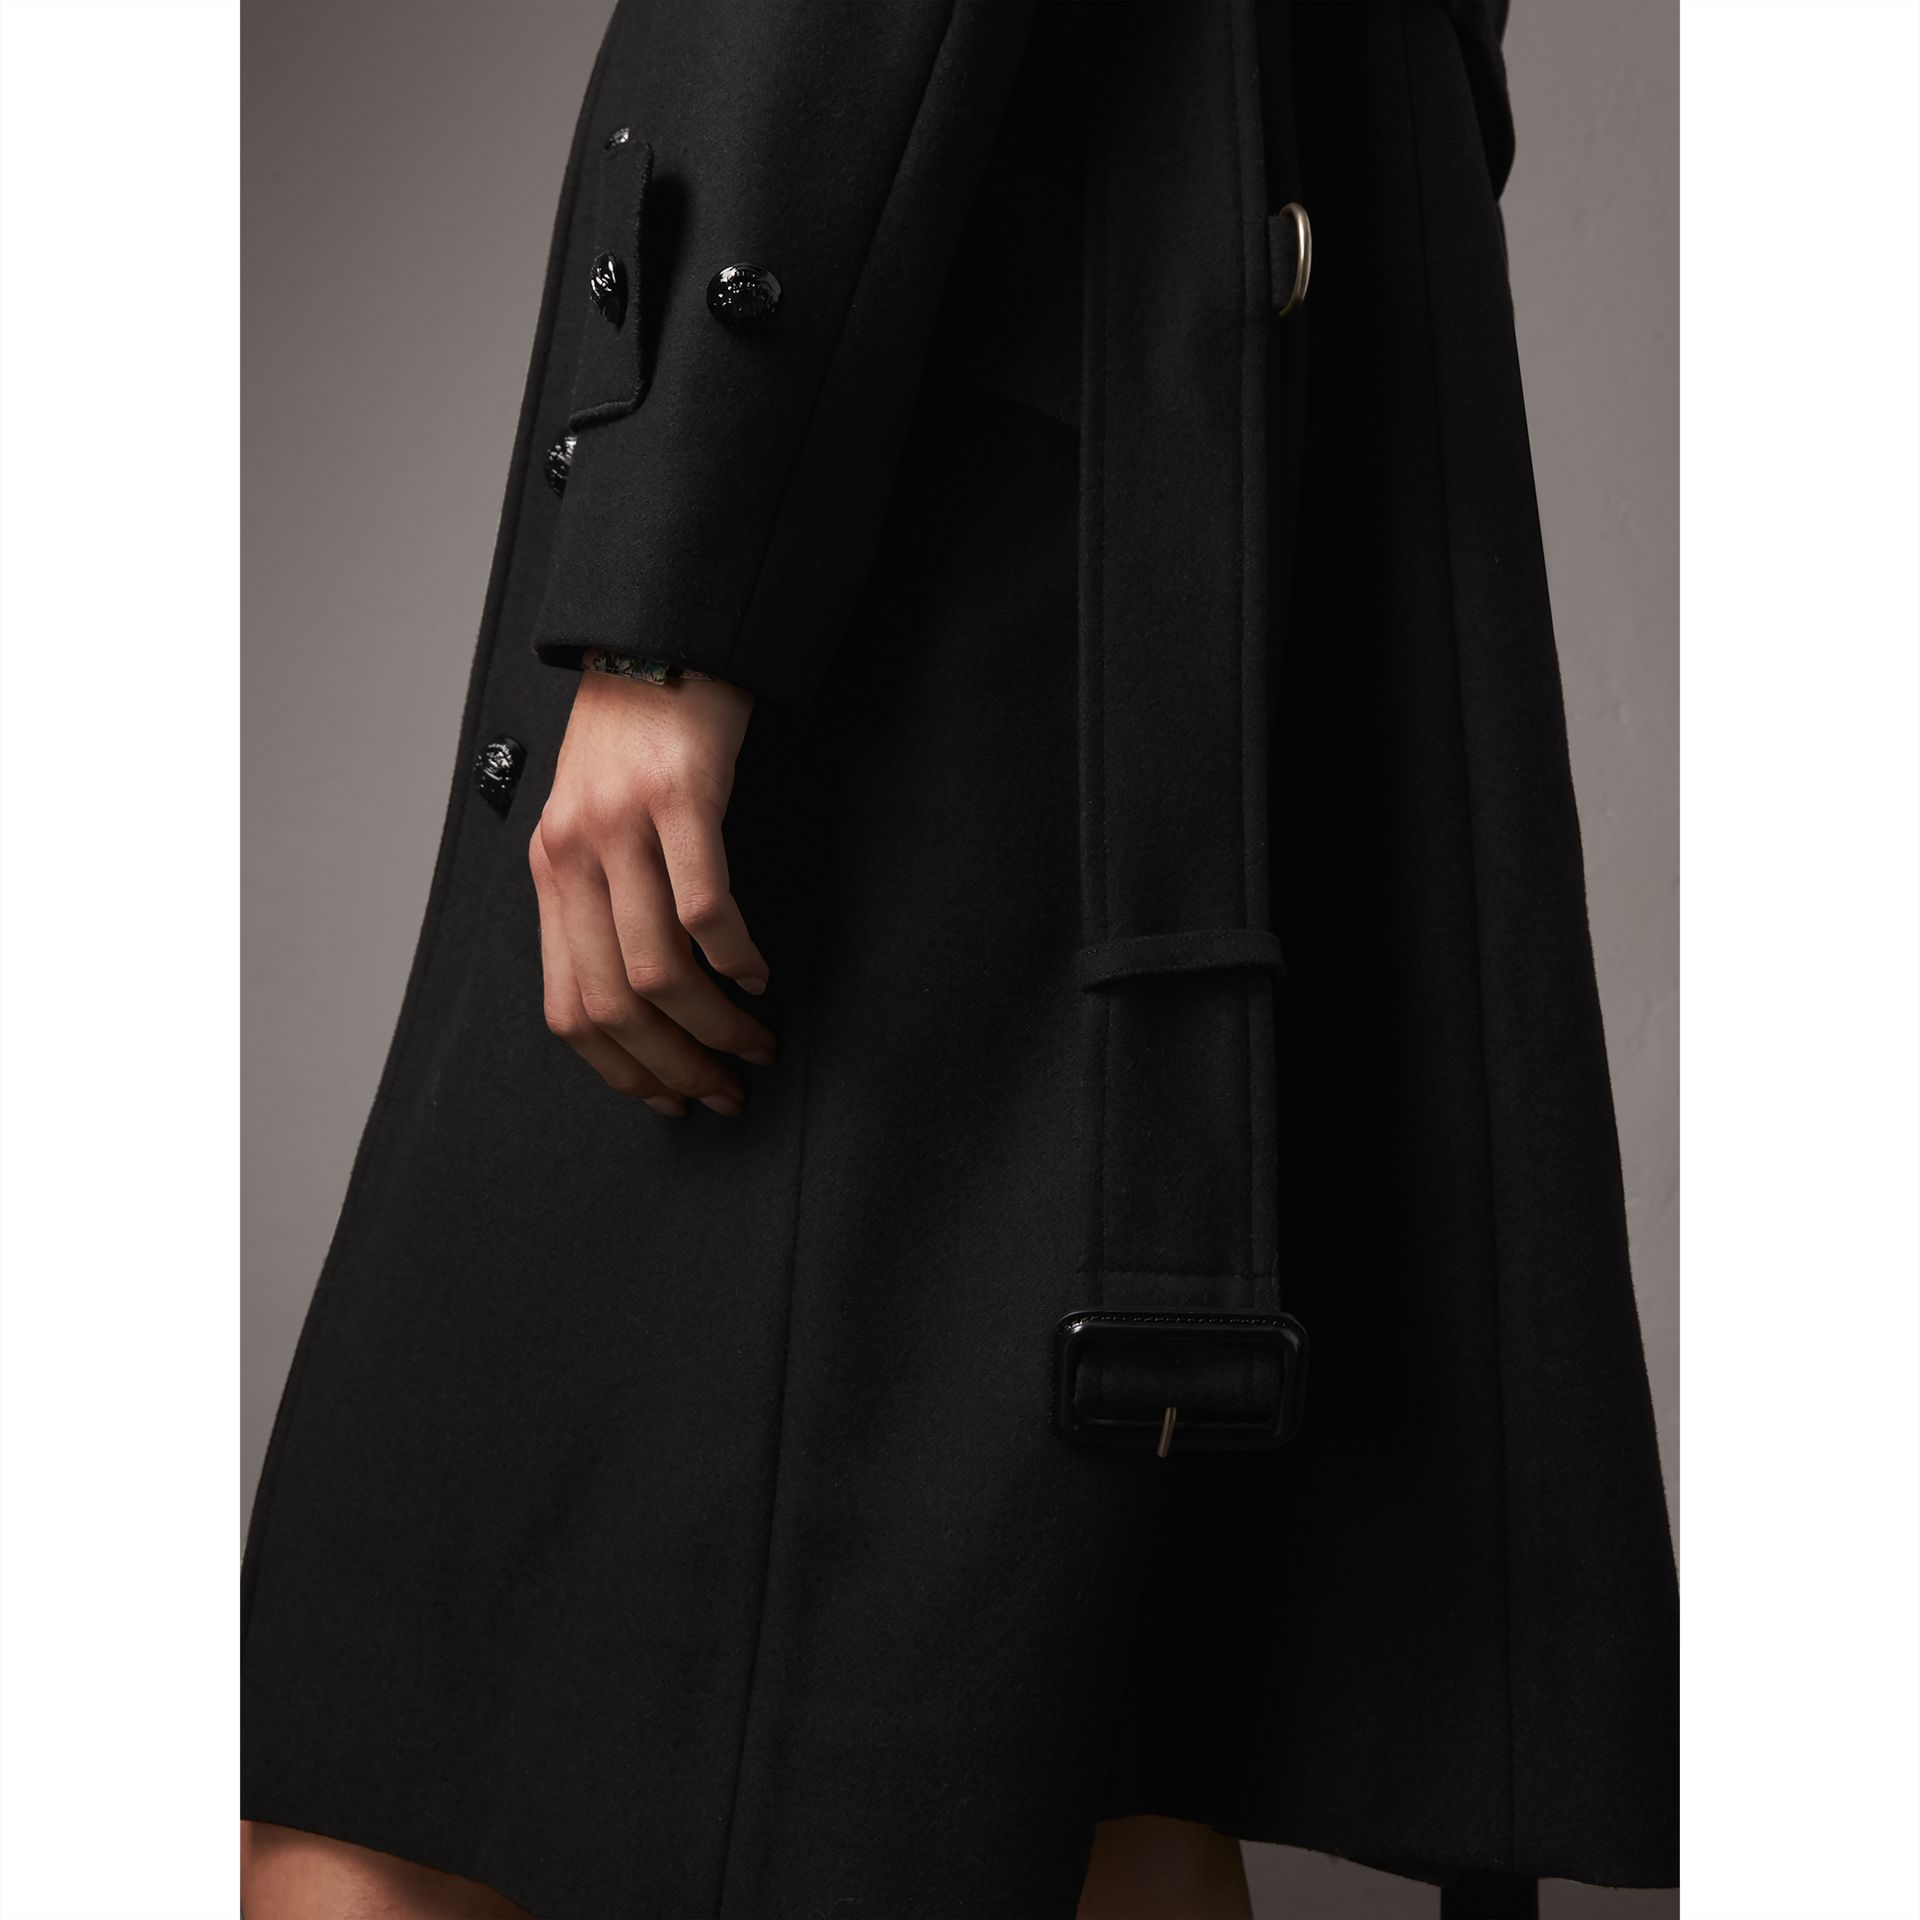 Hooded Wool Blend Coat with Detachable Fur Trim in Black - Women | Burberry - gallery image 2